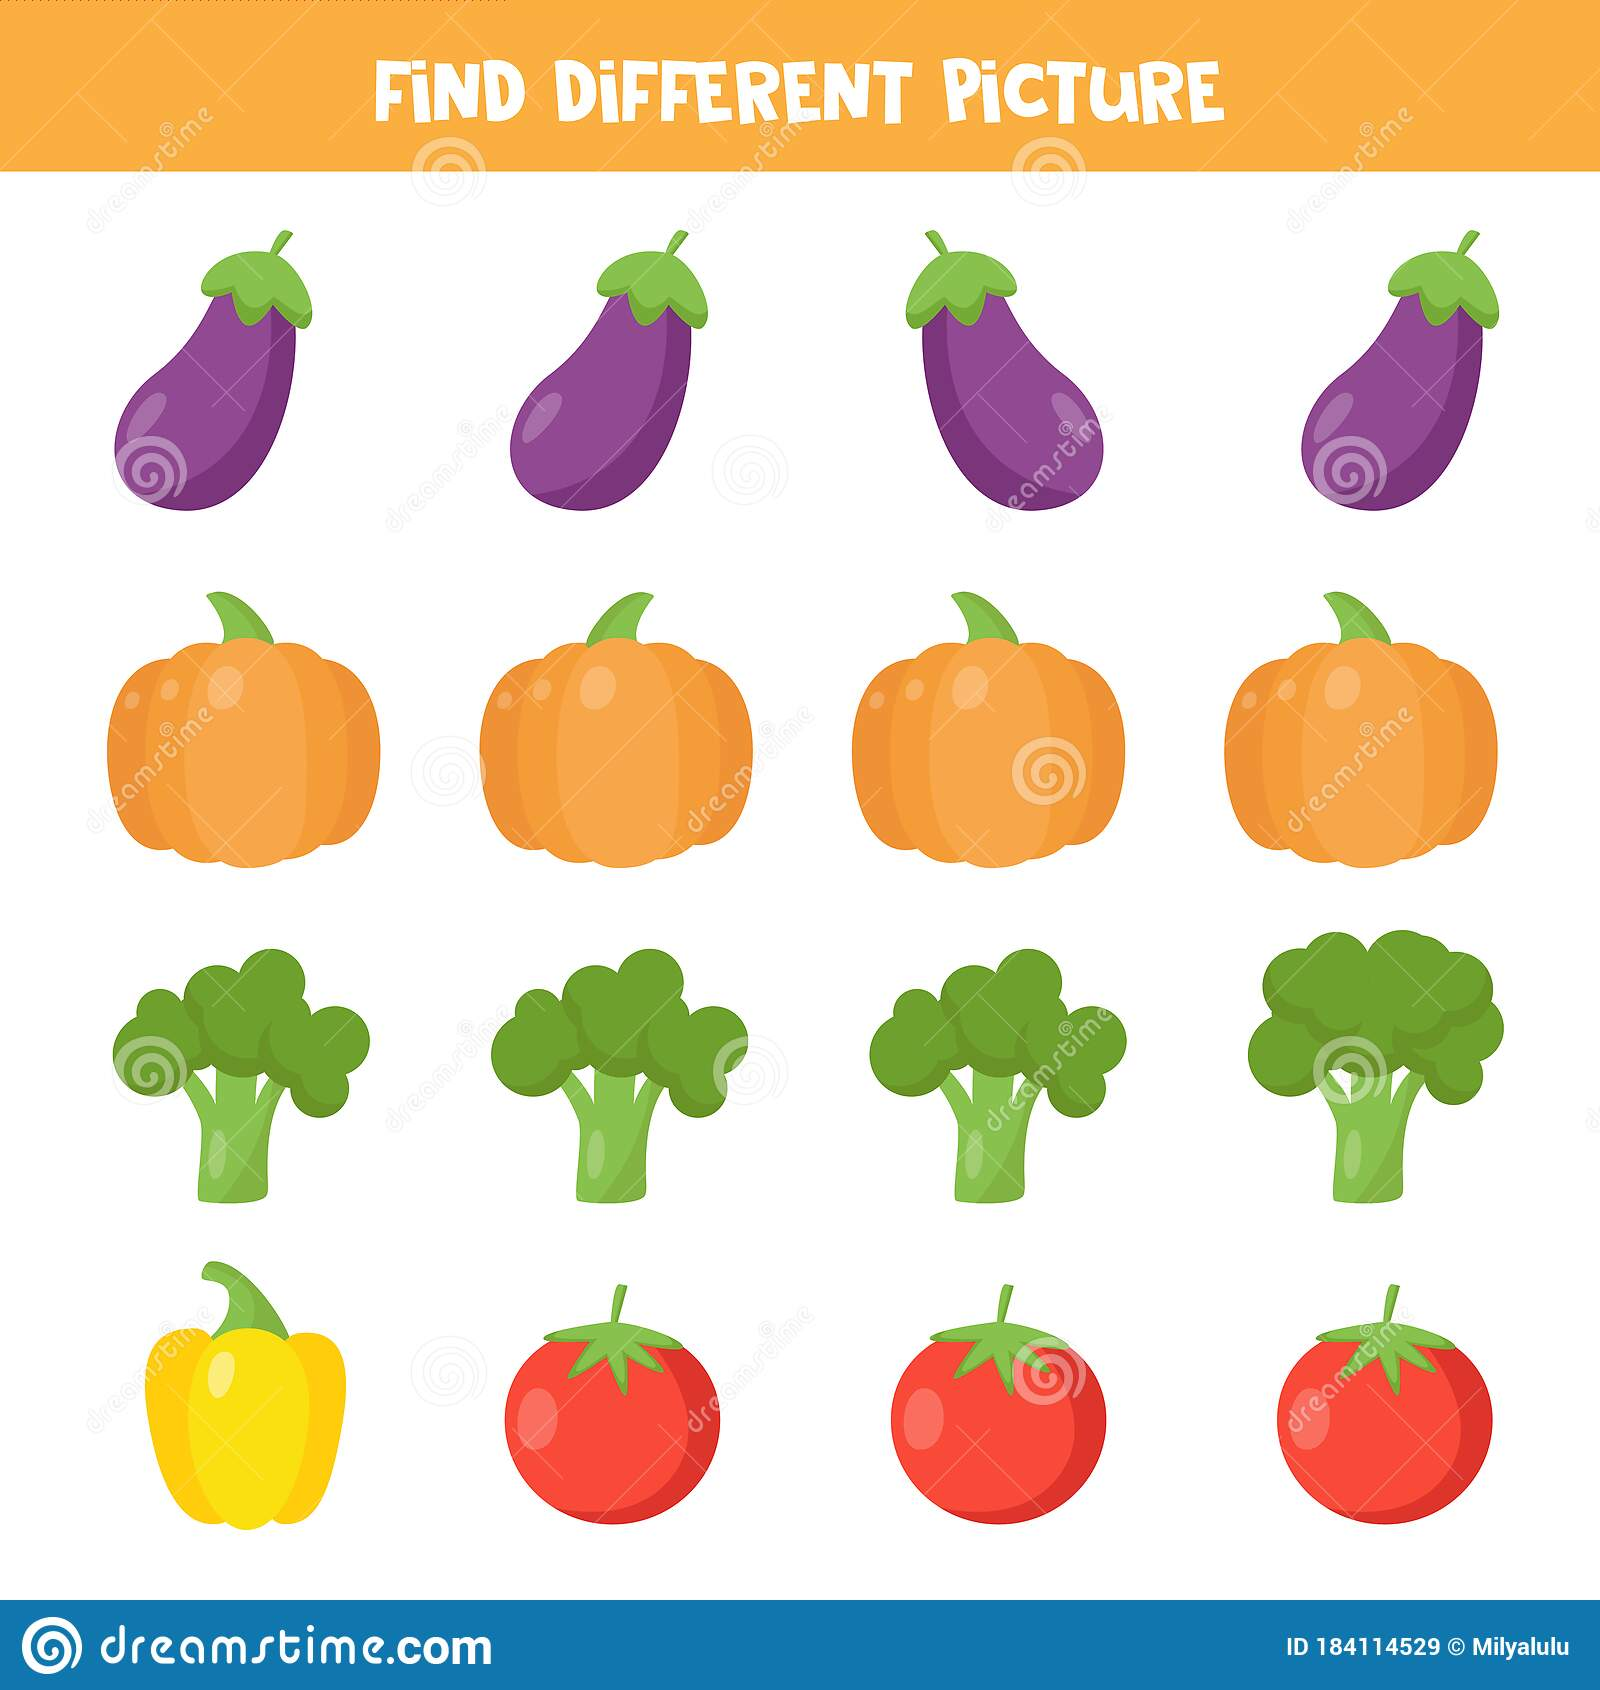 Find Different Vegetable In Each Row Educational